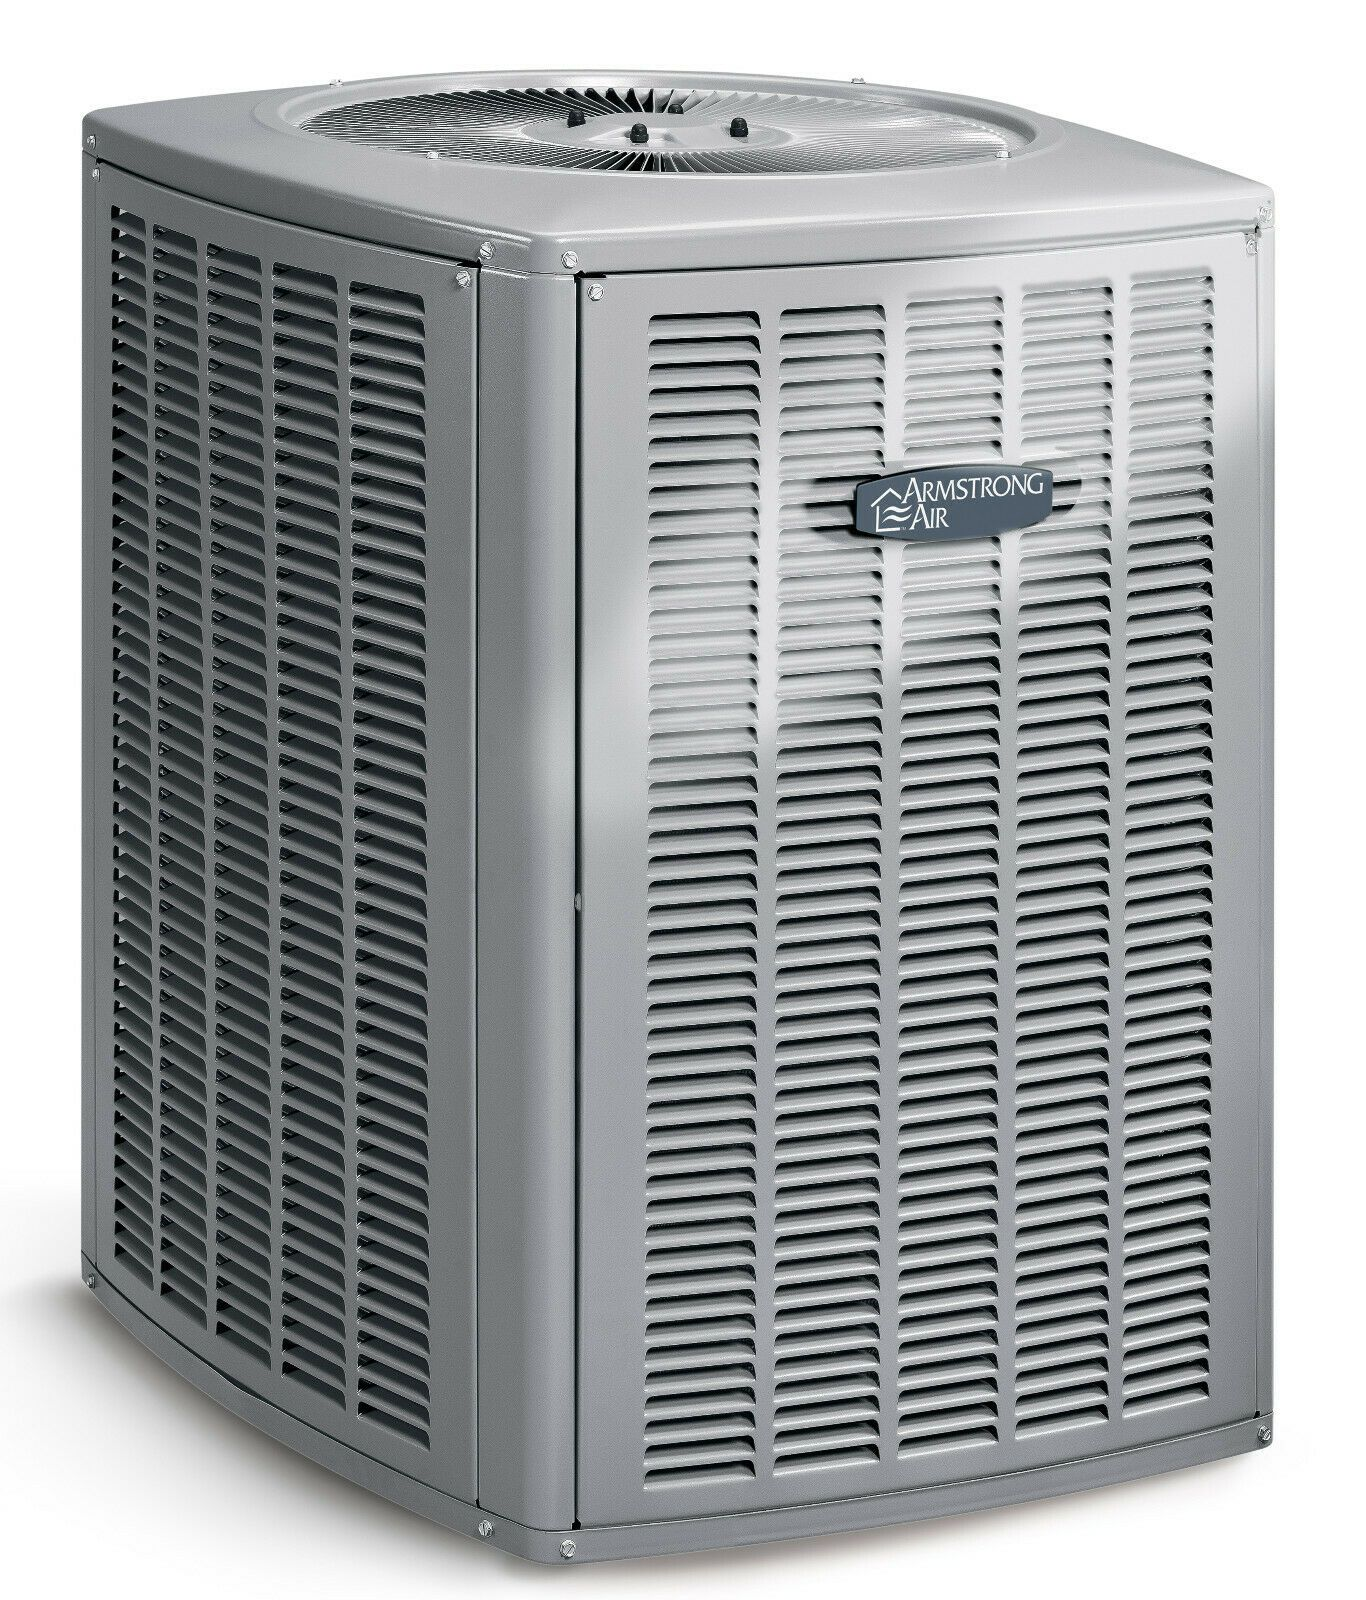 5 Ton Condenser in 2020 Conditioner, Air conditioner